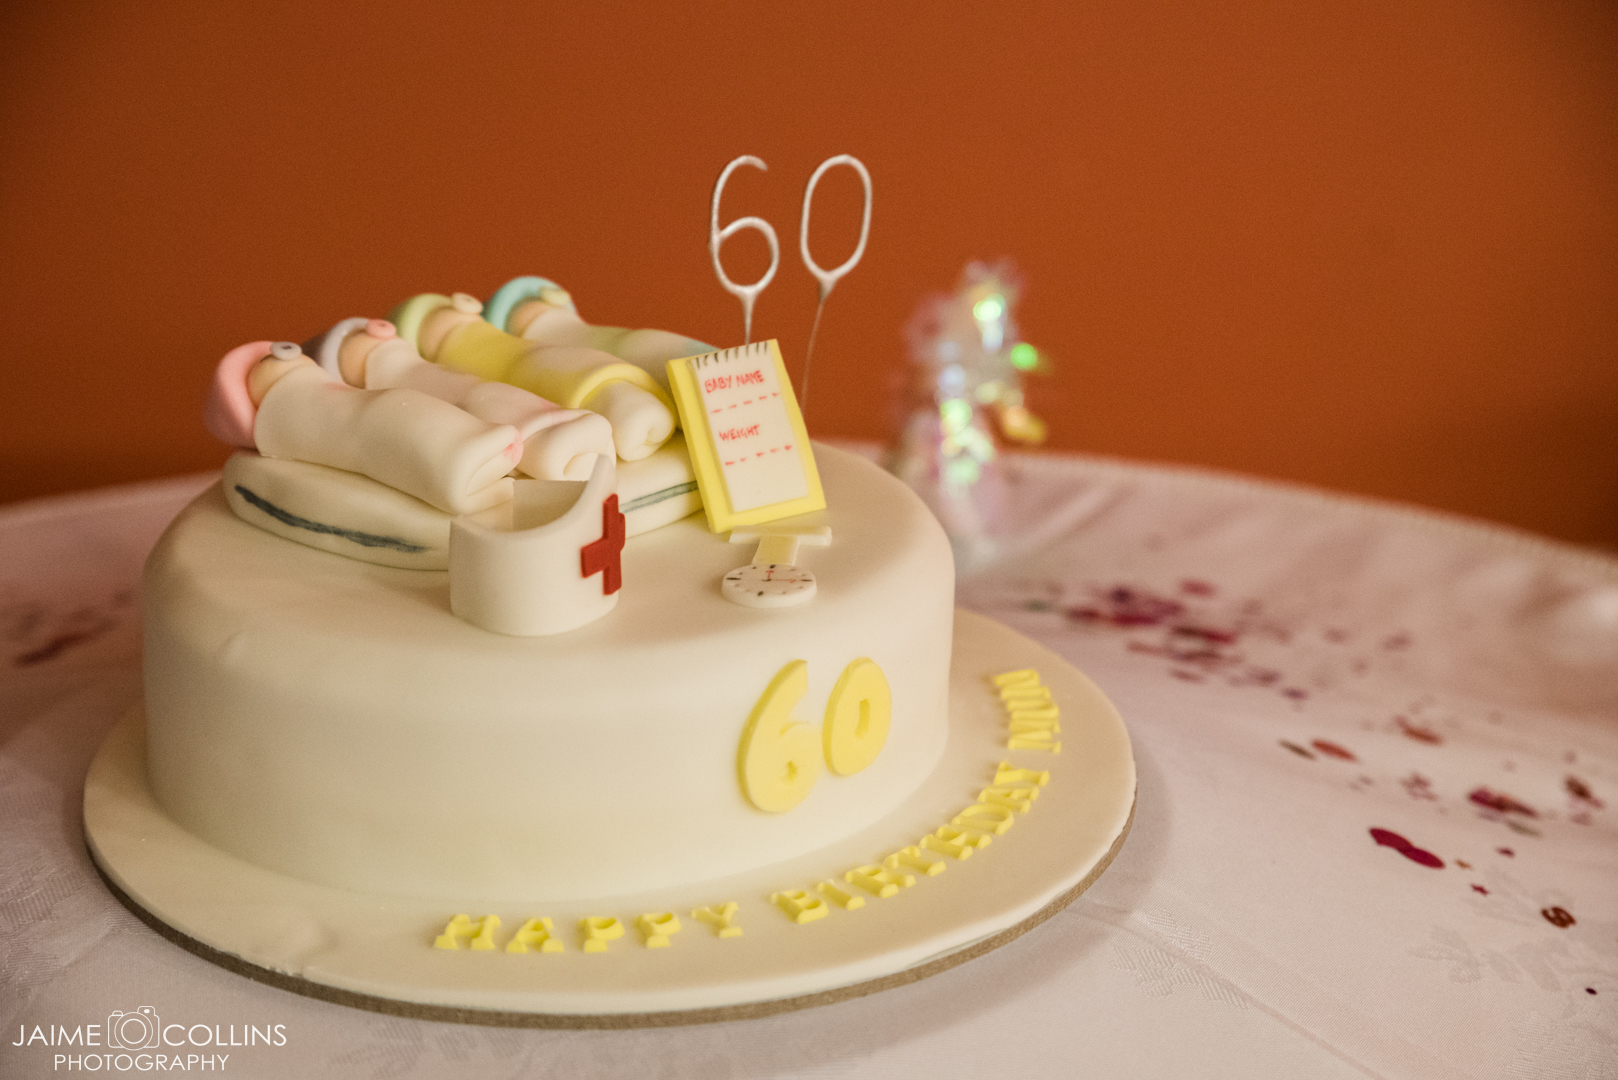 This amazing cake was made for the special occasion